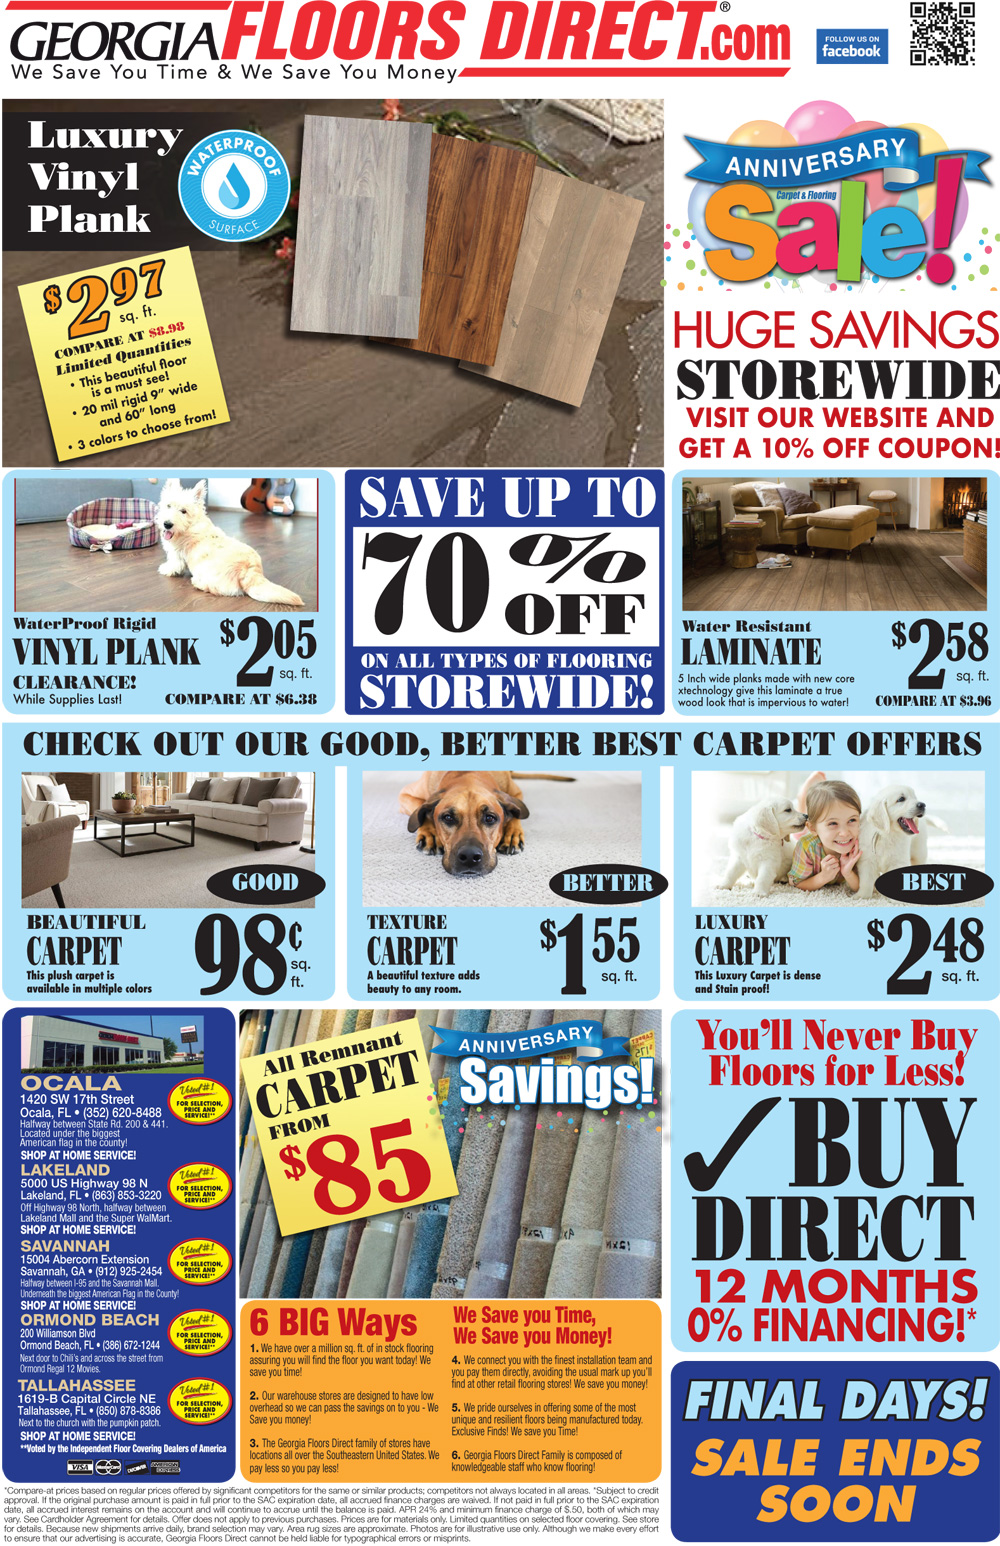 Specials at our Ocala store